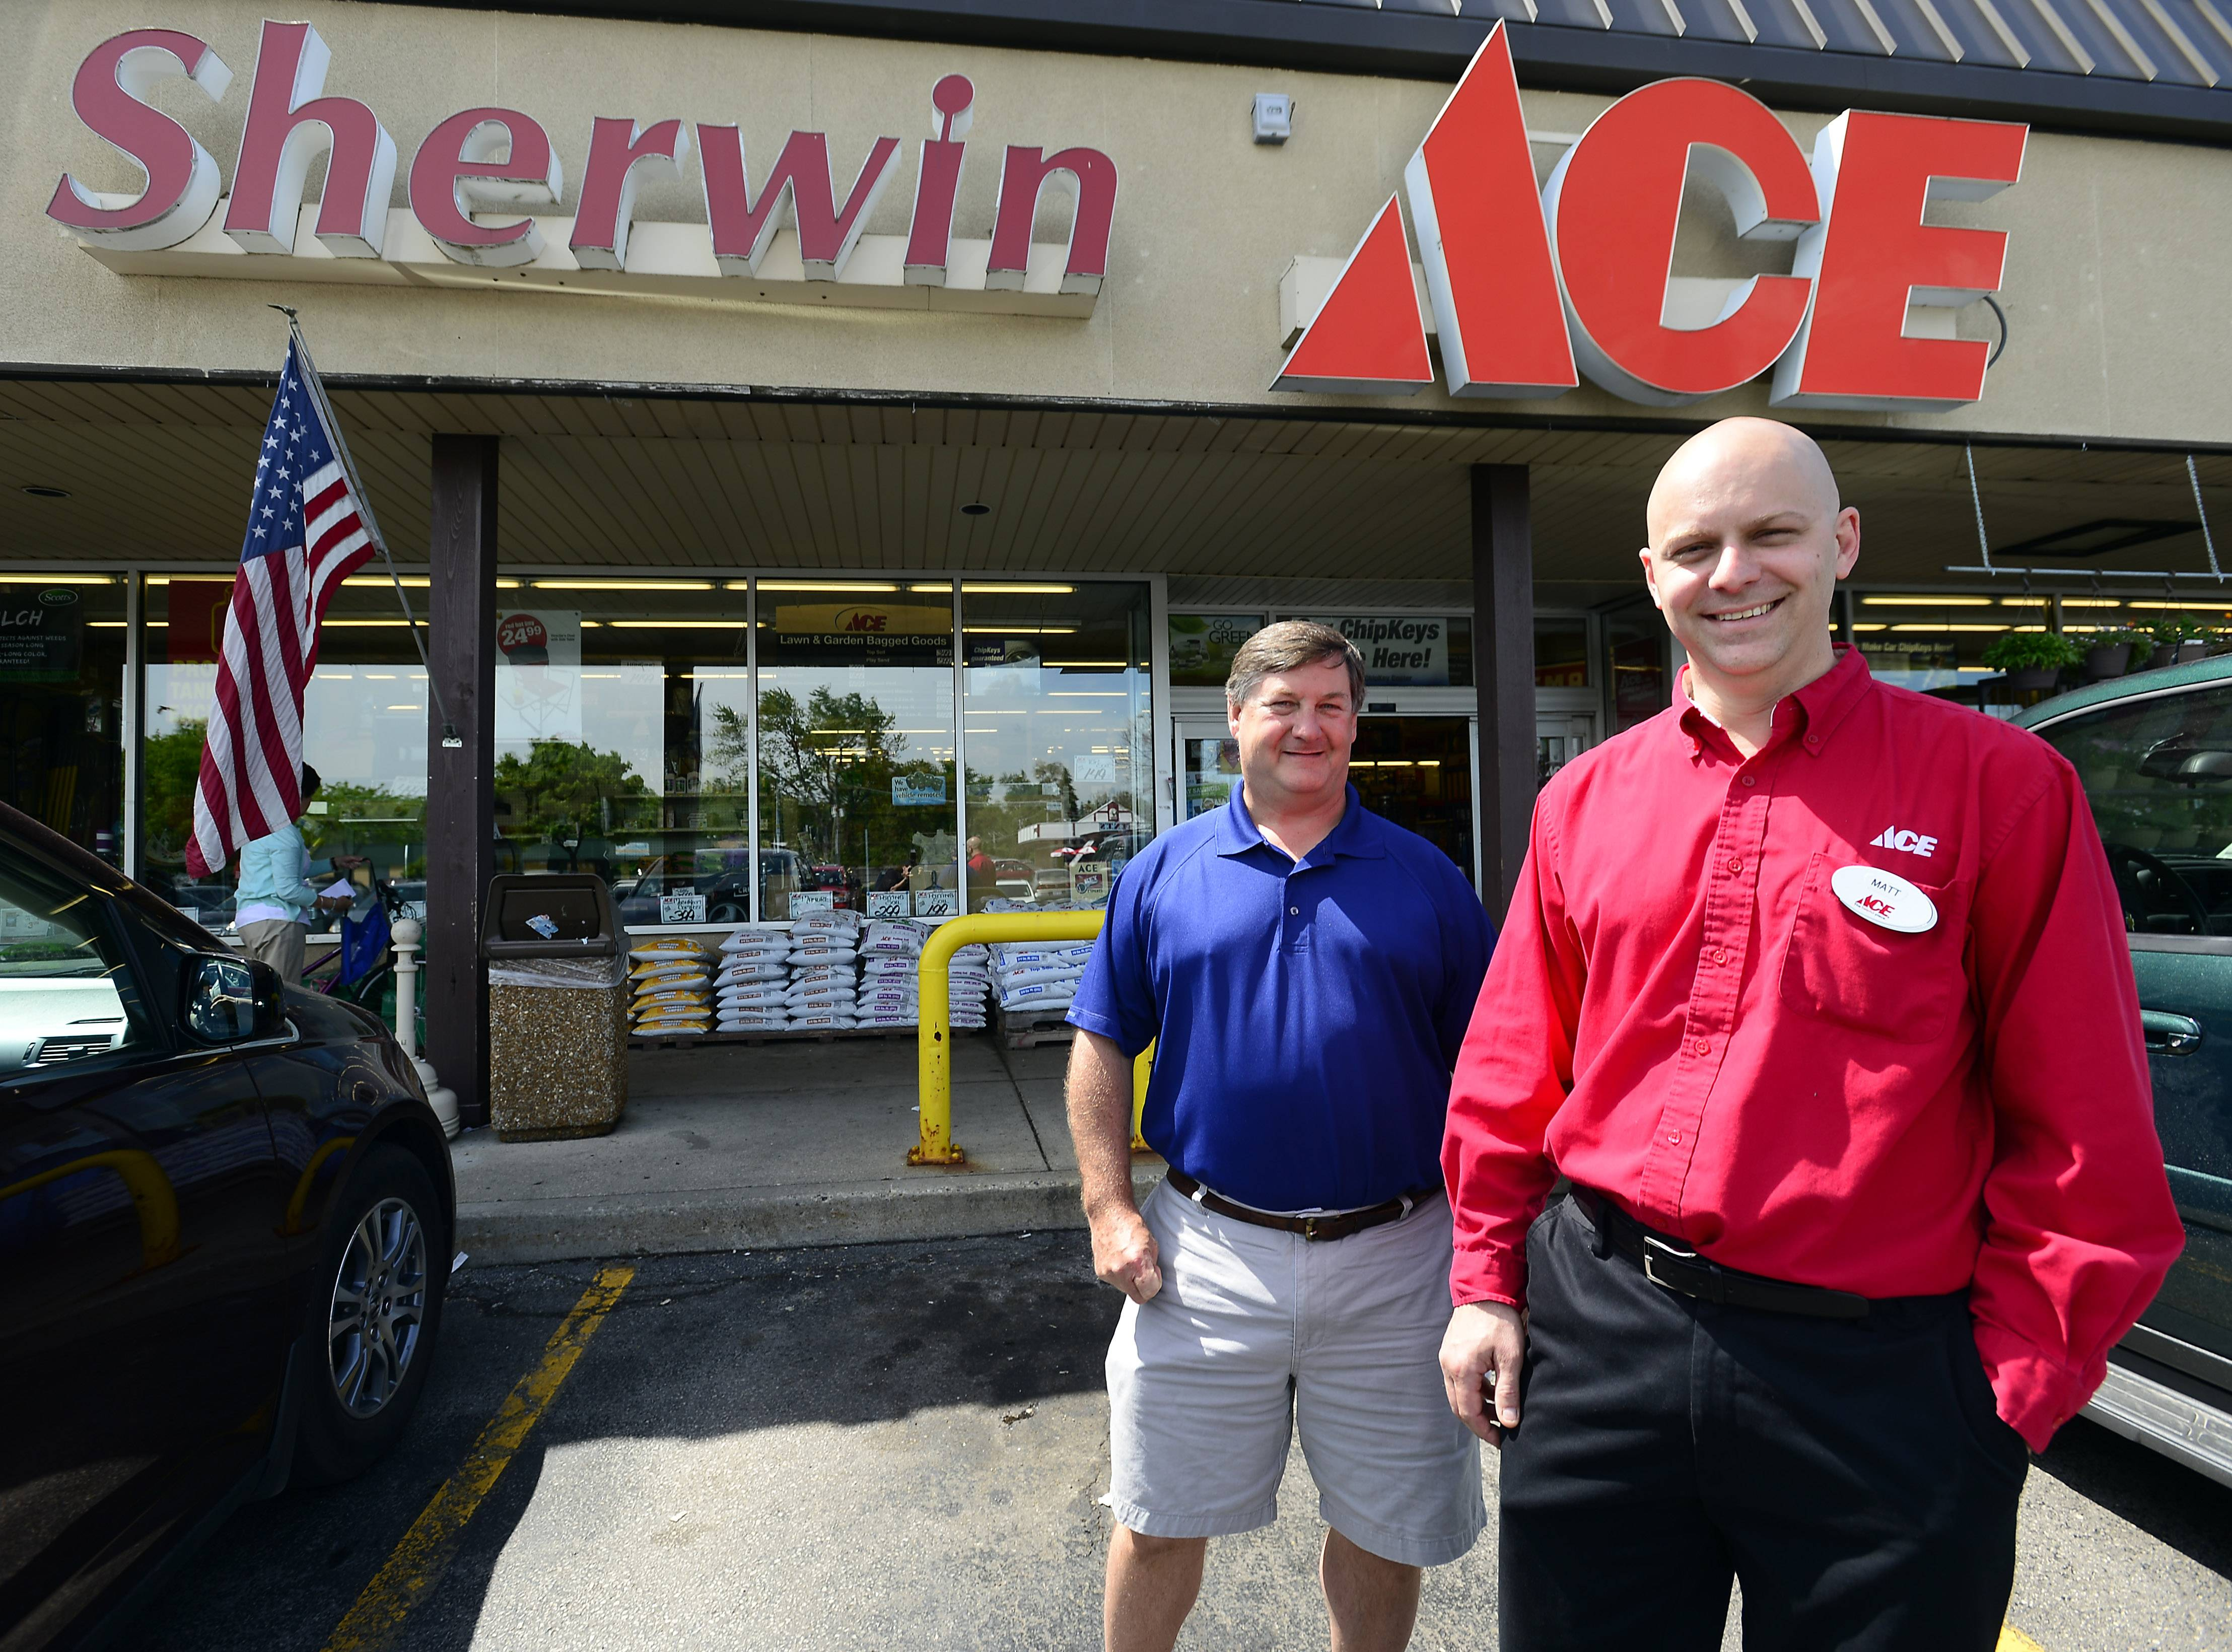 Sherwin Ace Hardware owner Matt Hanson, right, stands with former owner Bob Ward. Hanson took over the Arlington Heights business Jan. 1.